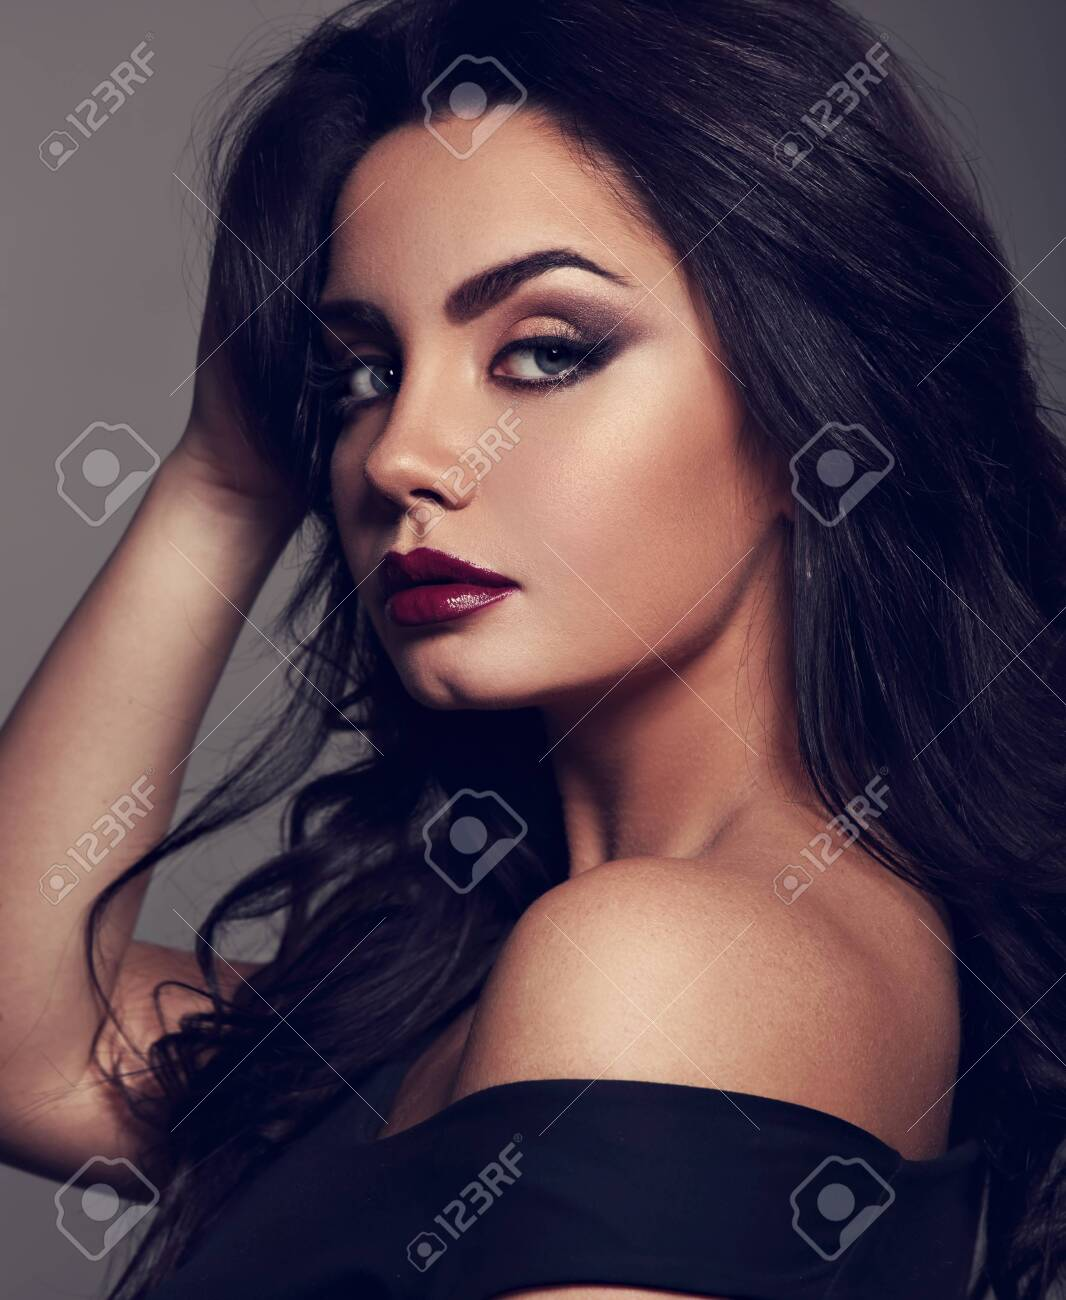 Beautiful Bright Makeup Woman With Long Black Curly Hair Style